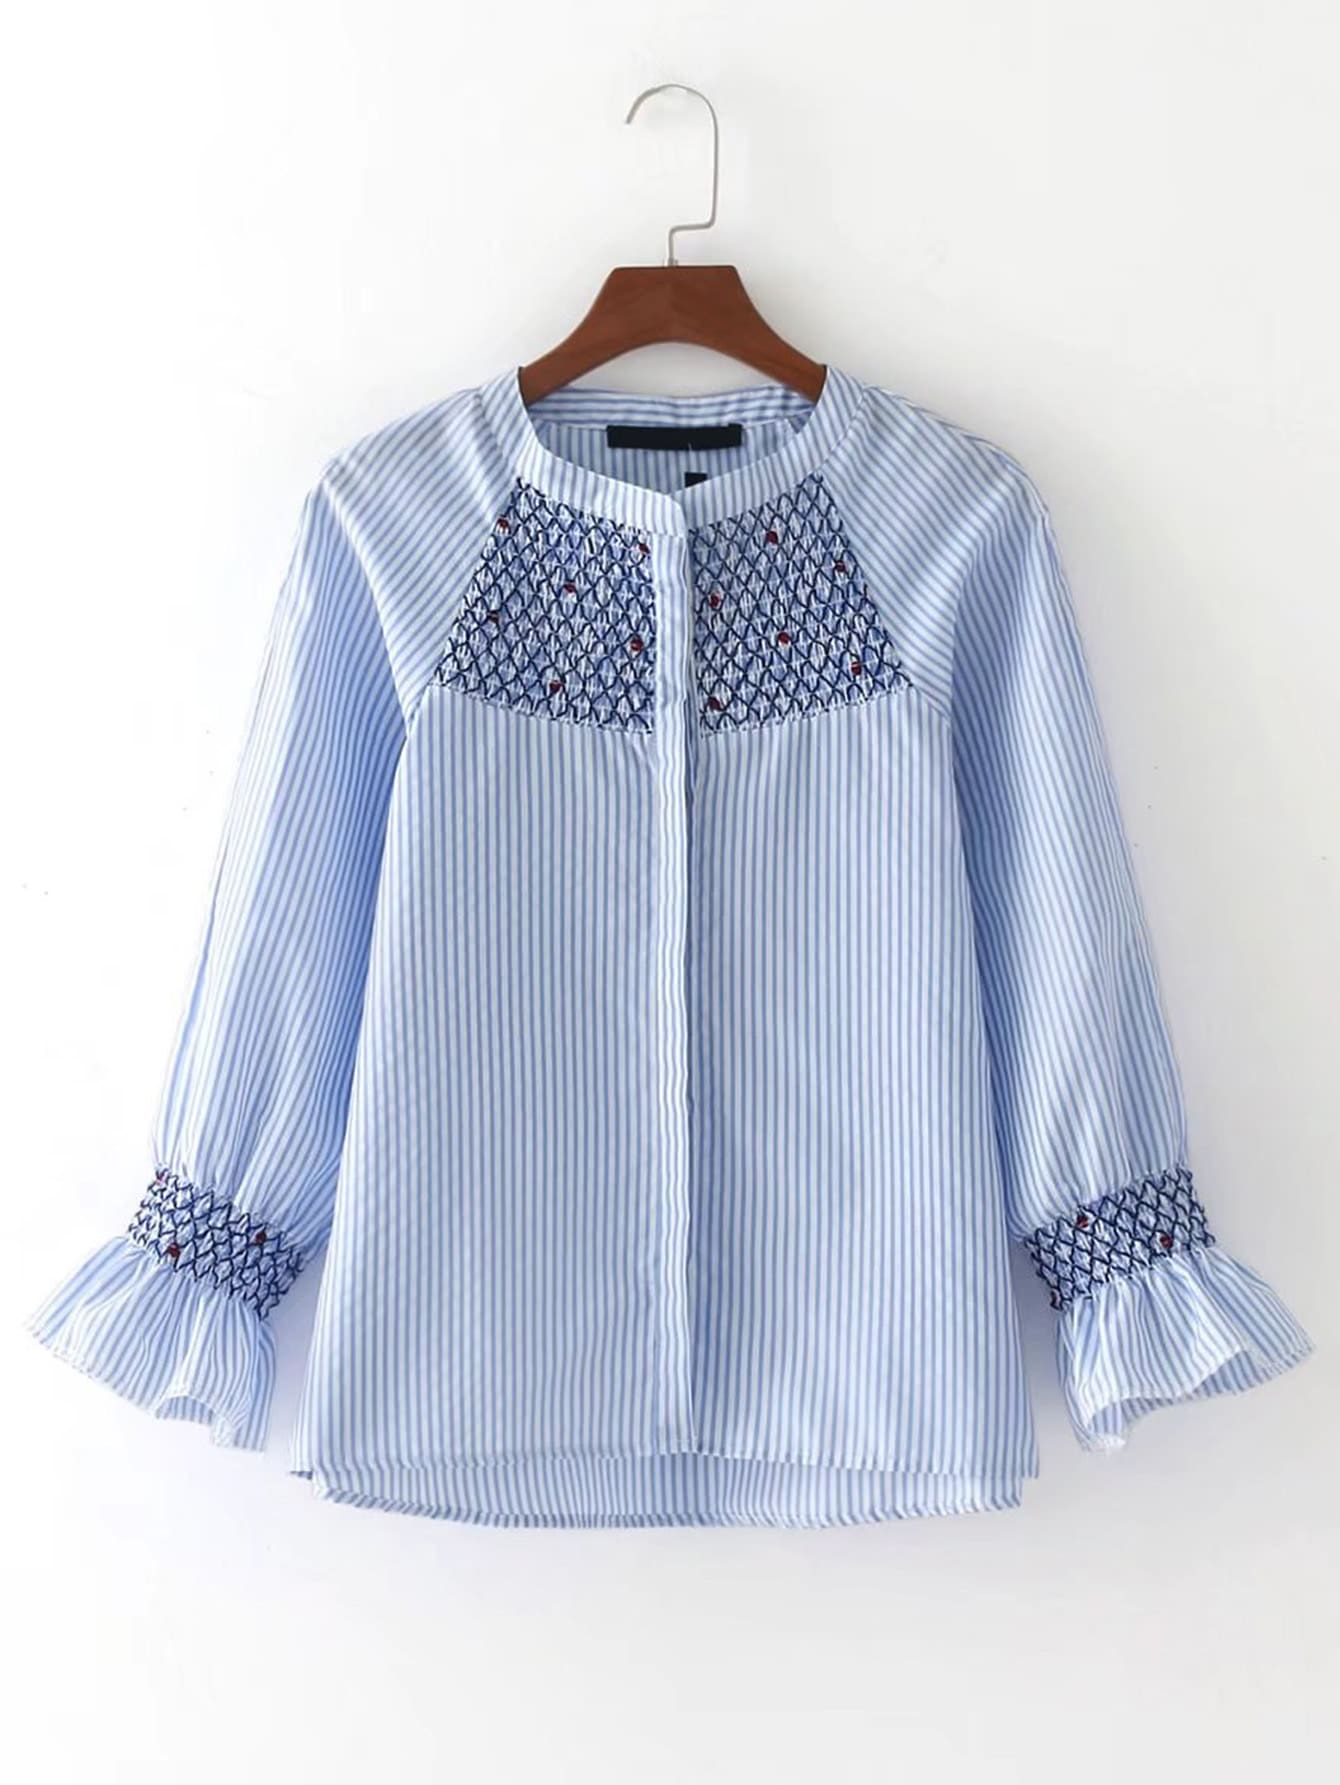 Raglan Sleeve Vertical Striped Embroidered Blouse blouse170426205